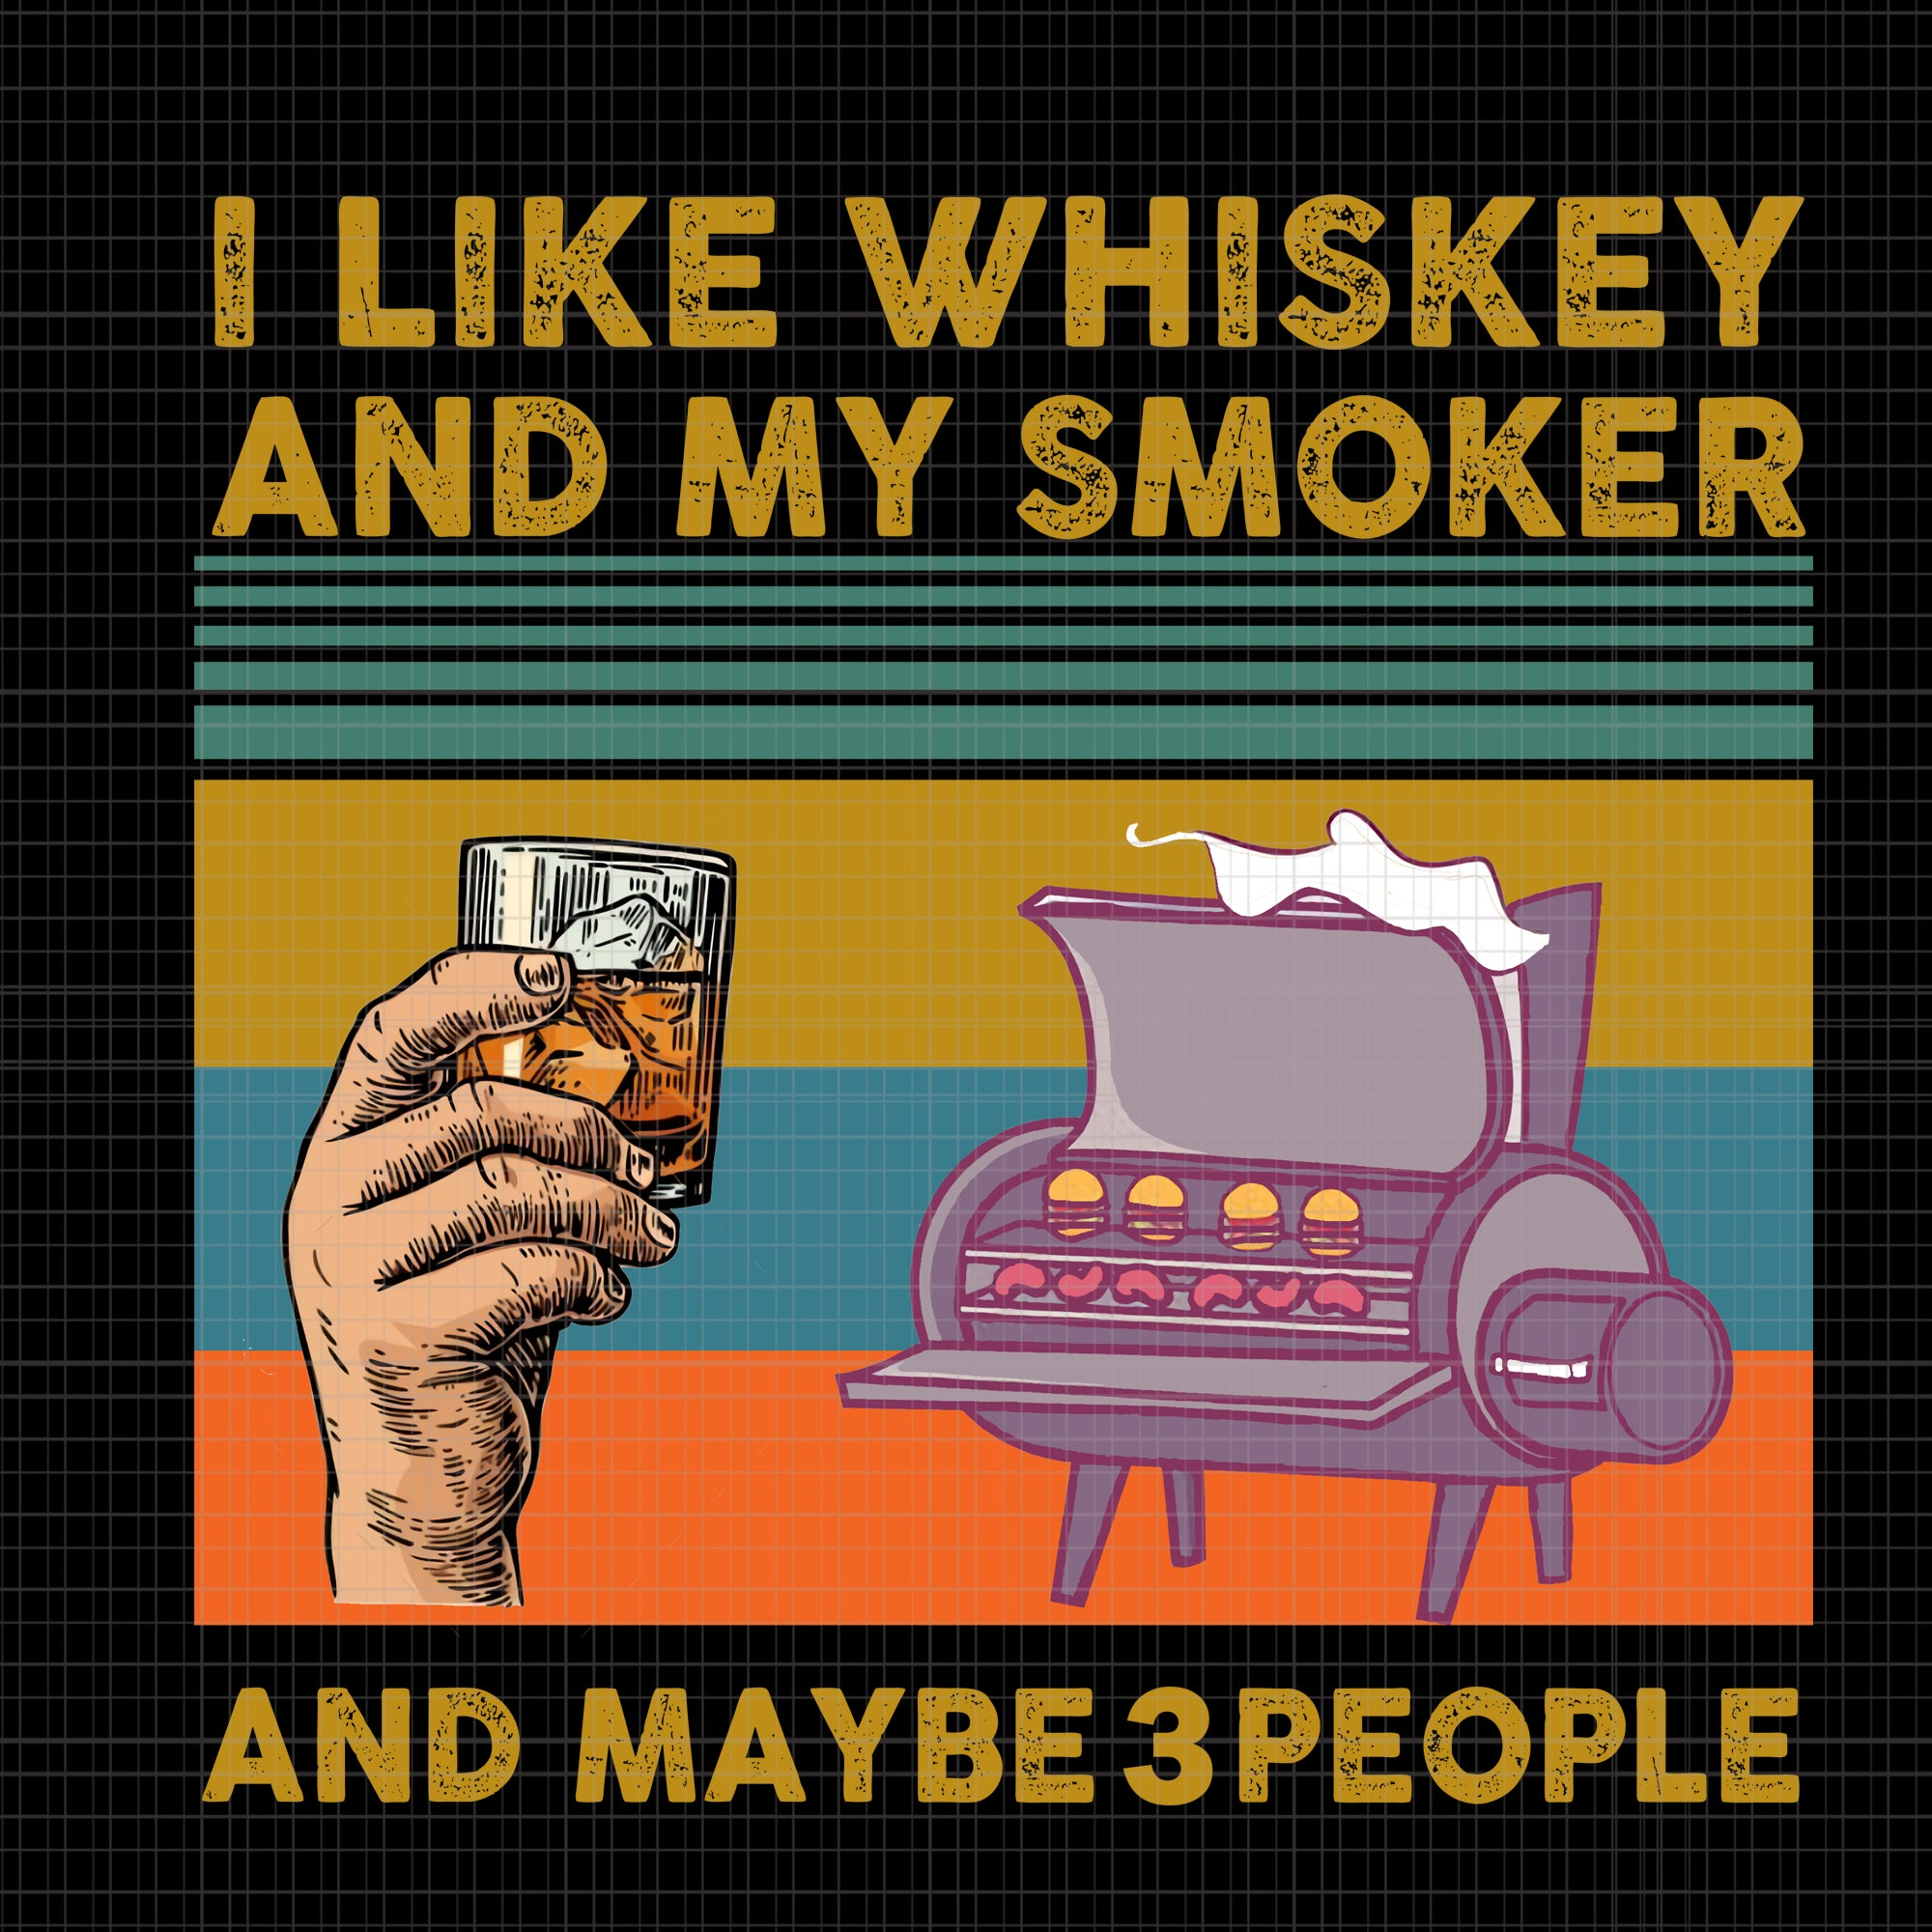 I like whiskey and my smoker and maybe 3 people png, I like whiskey and my smoker and maybe 3 people, I like whiskey and my smoker and maybe 3 people  vector, I like whiskey and my smoker and maybe 3 people  png